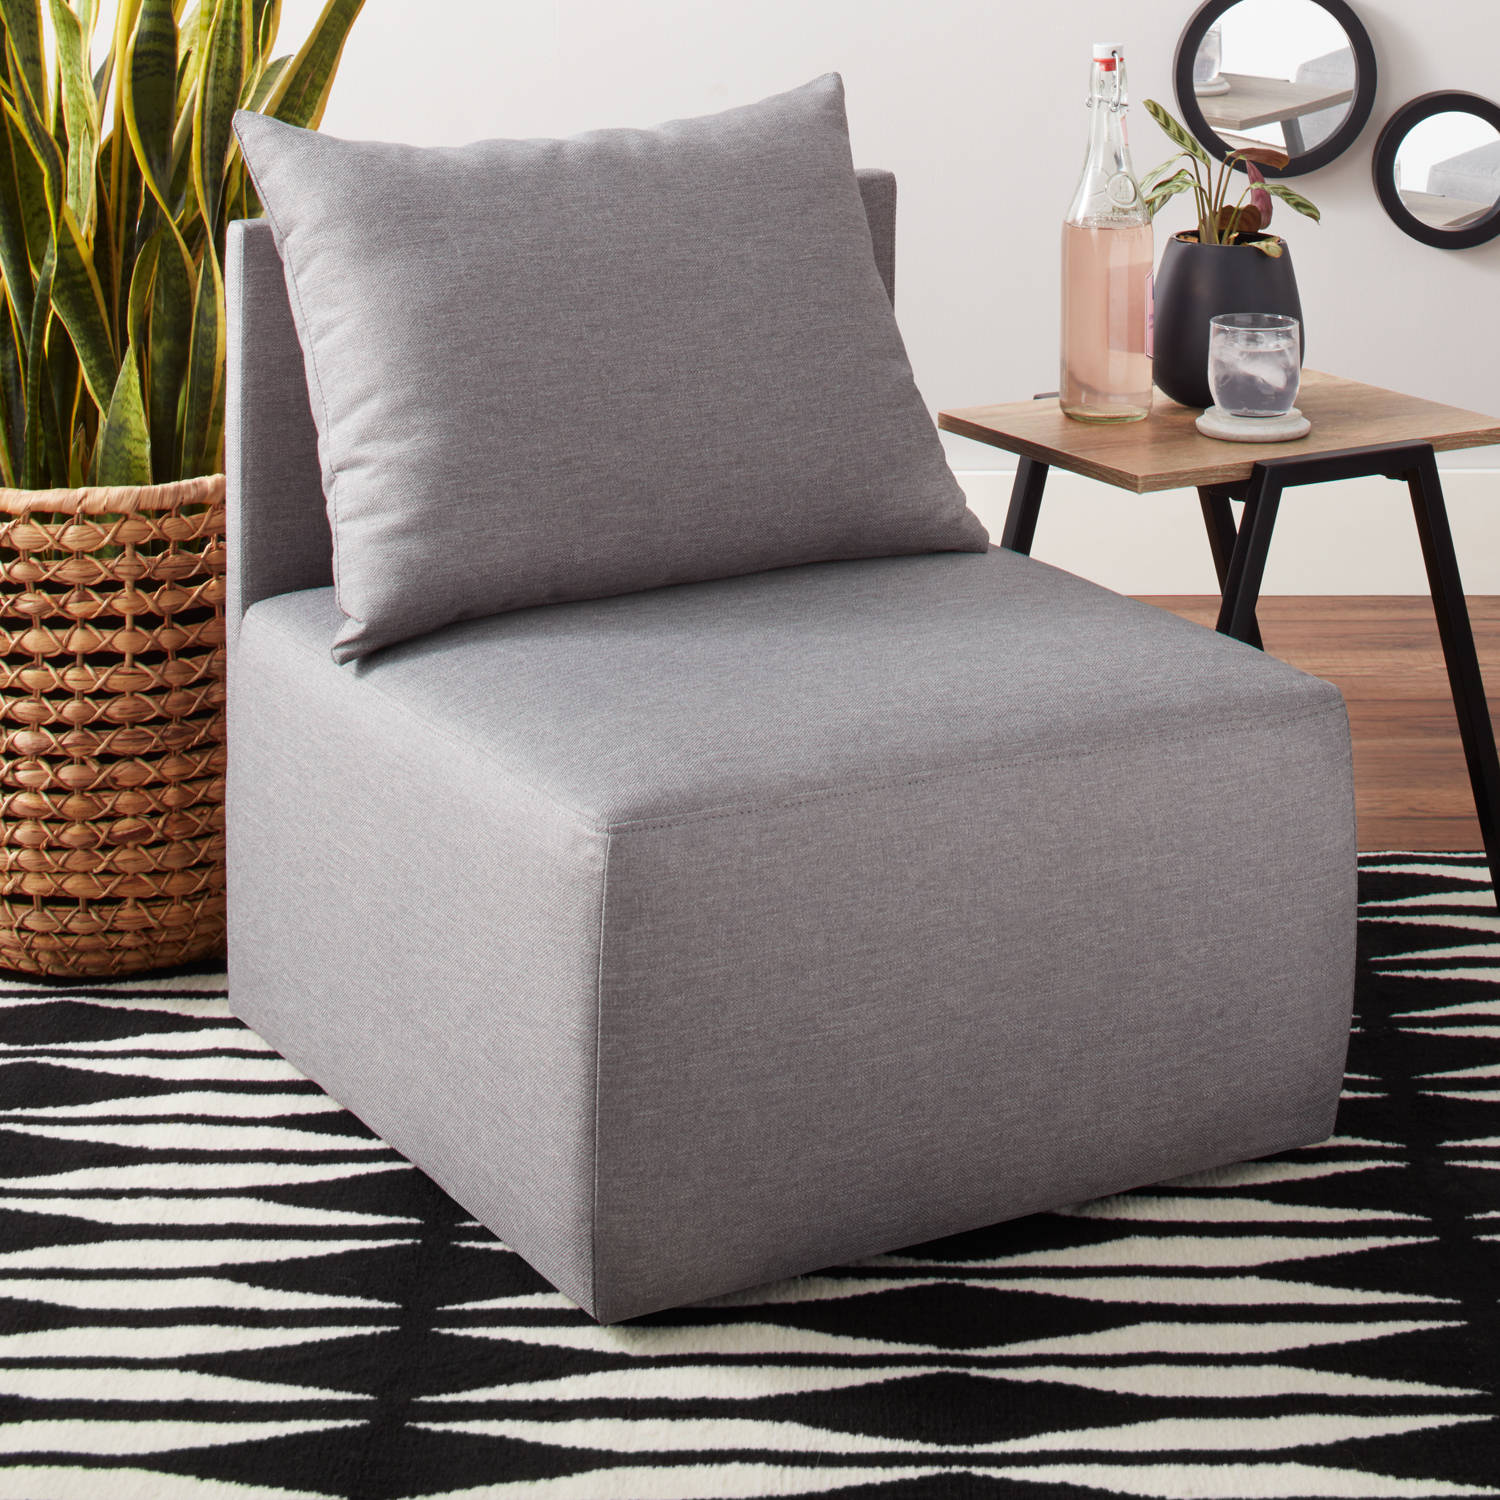 Mainstays Modular Single Lounge Chair